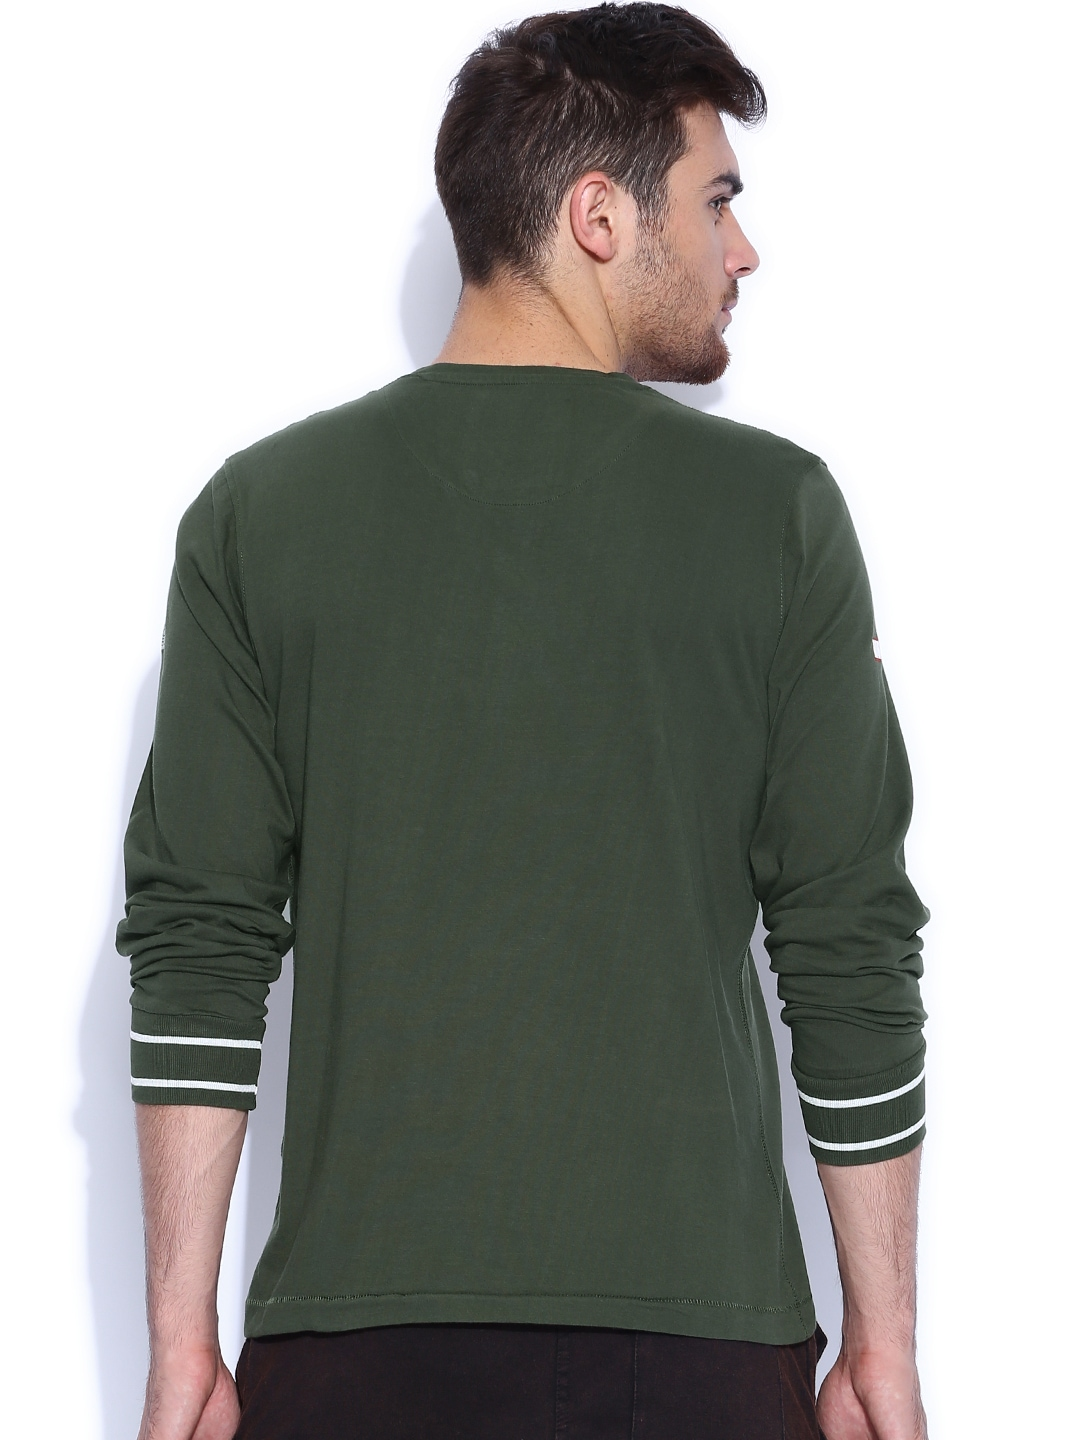 Find green henley shirt at ShopStyle. Shop the latest collection of green henley shirt from the most popular stores - all in one place.